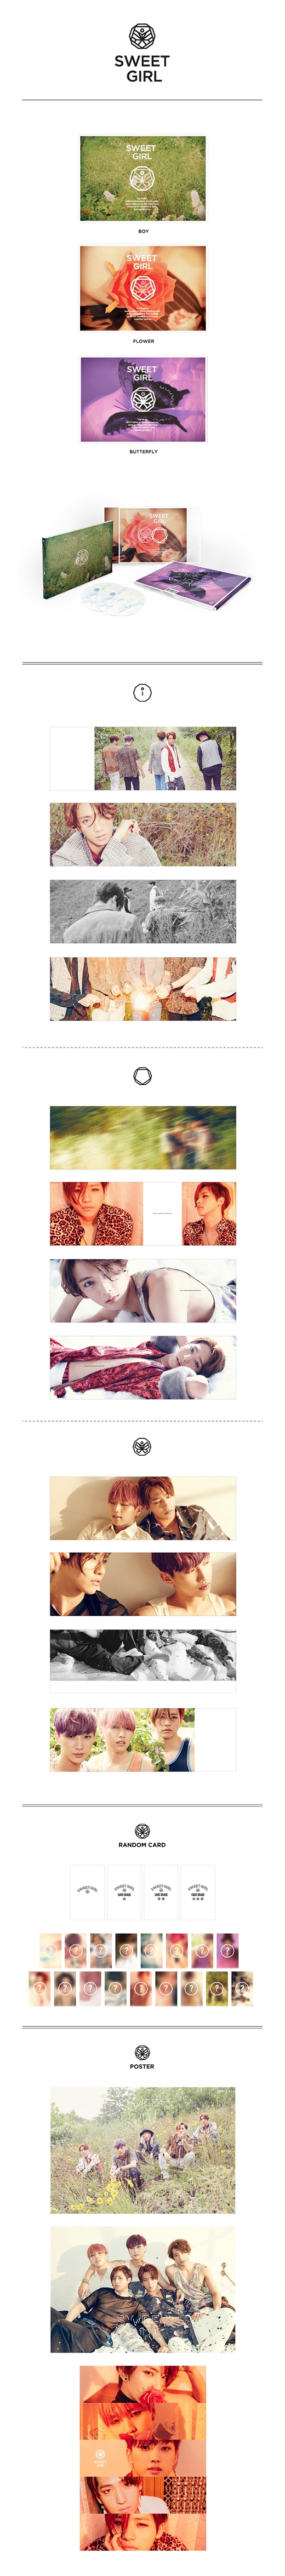 B1A4 - 6th Mini Album(SWEETGIRL)